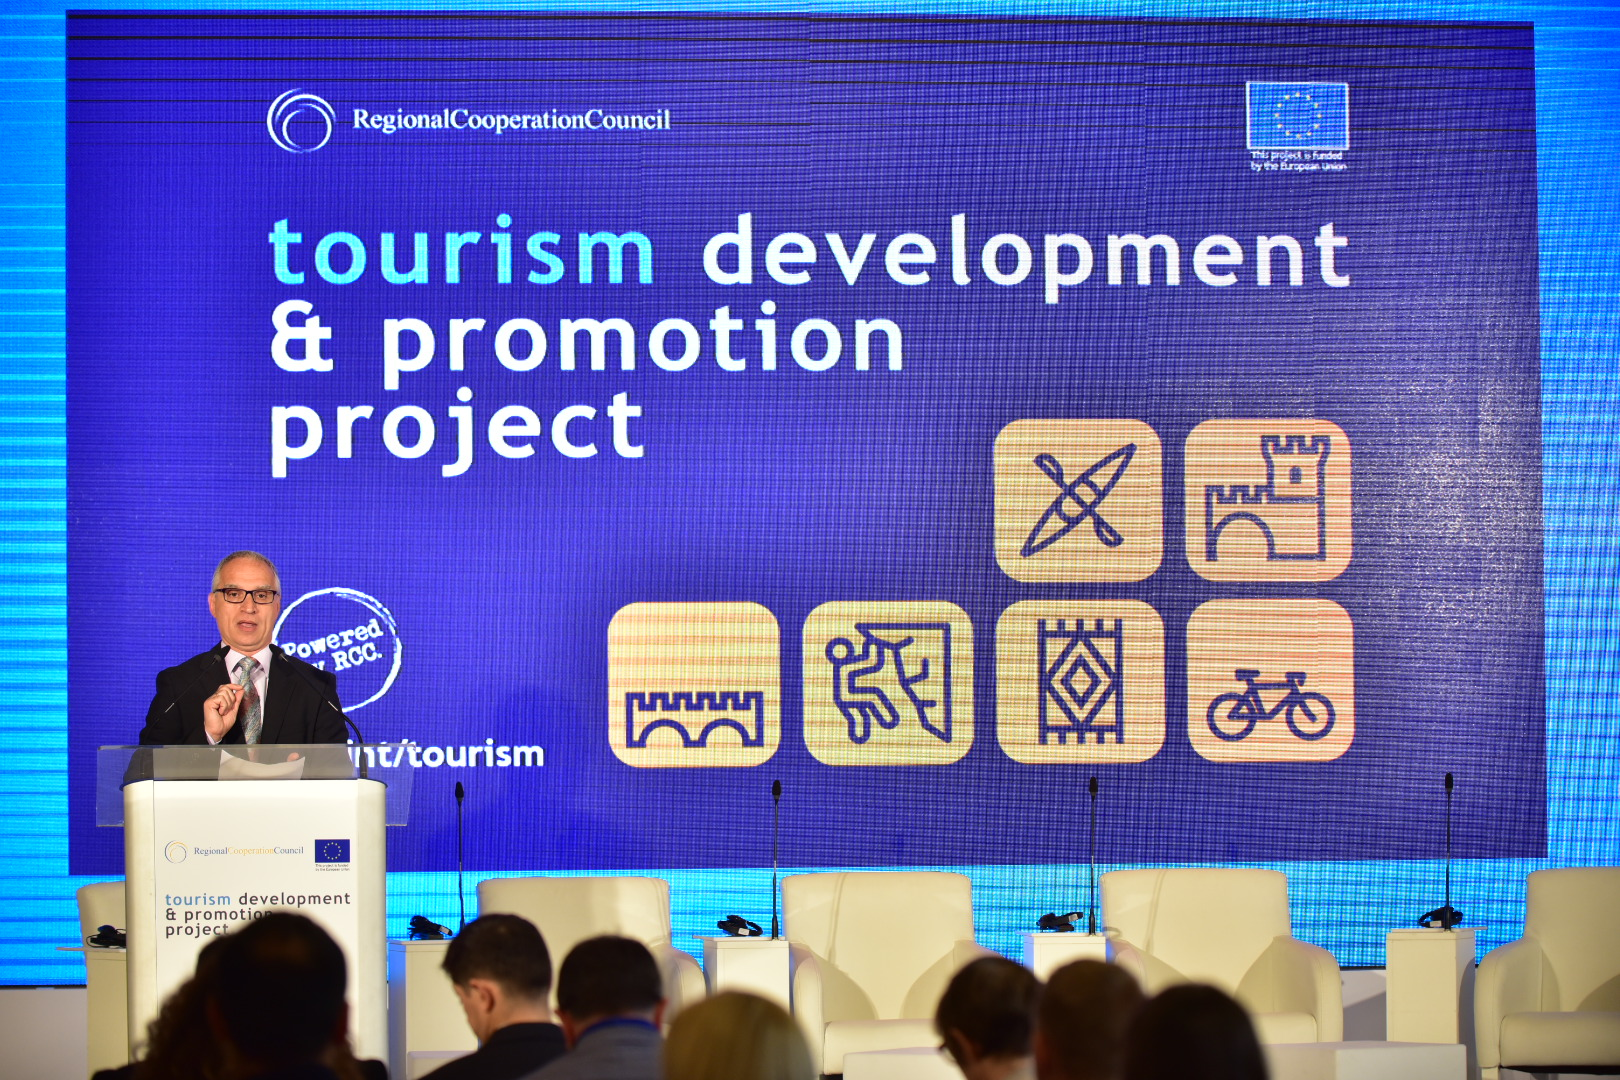 Launch of the RCC-led Tourism Development and Promotion Project, in Sarajevo City Hall on 28 June 2018 (Photo:RCC/Armin Durgut)